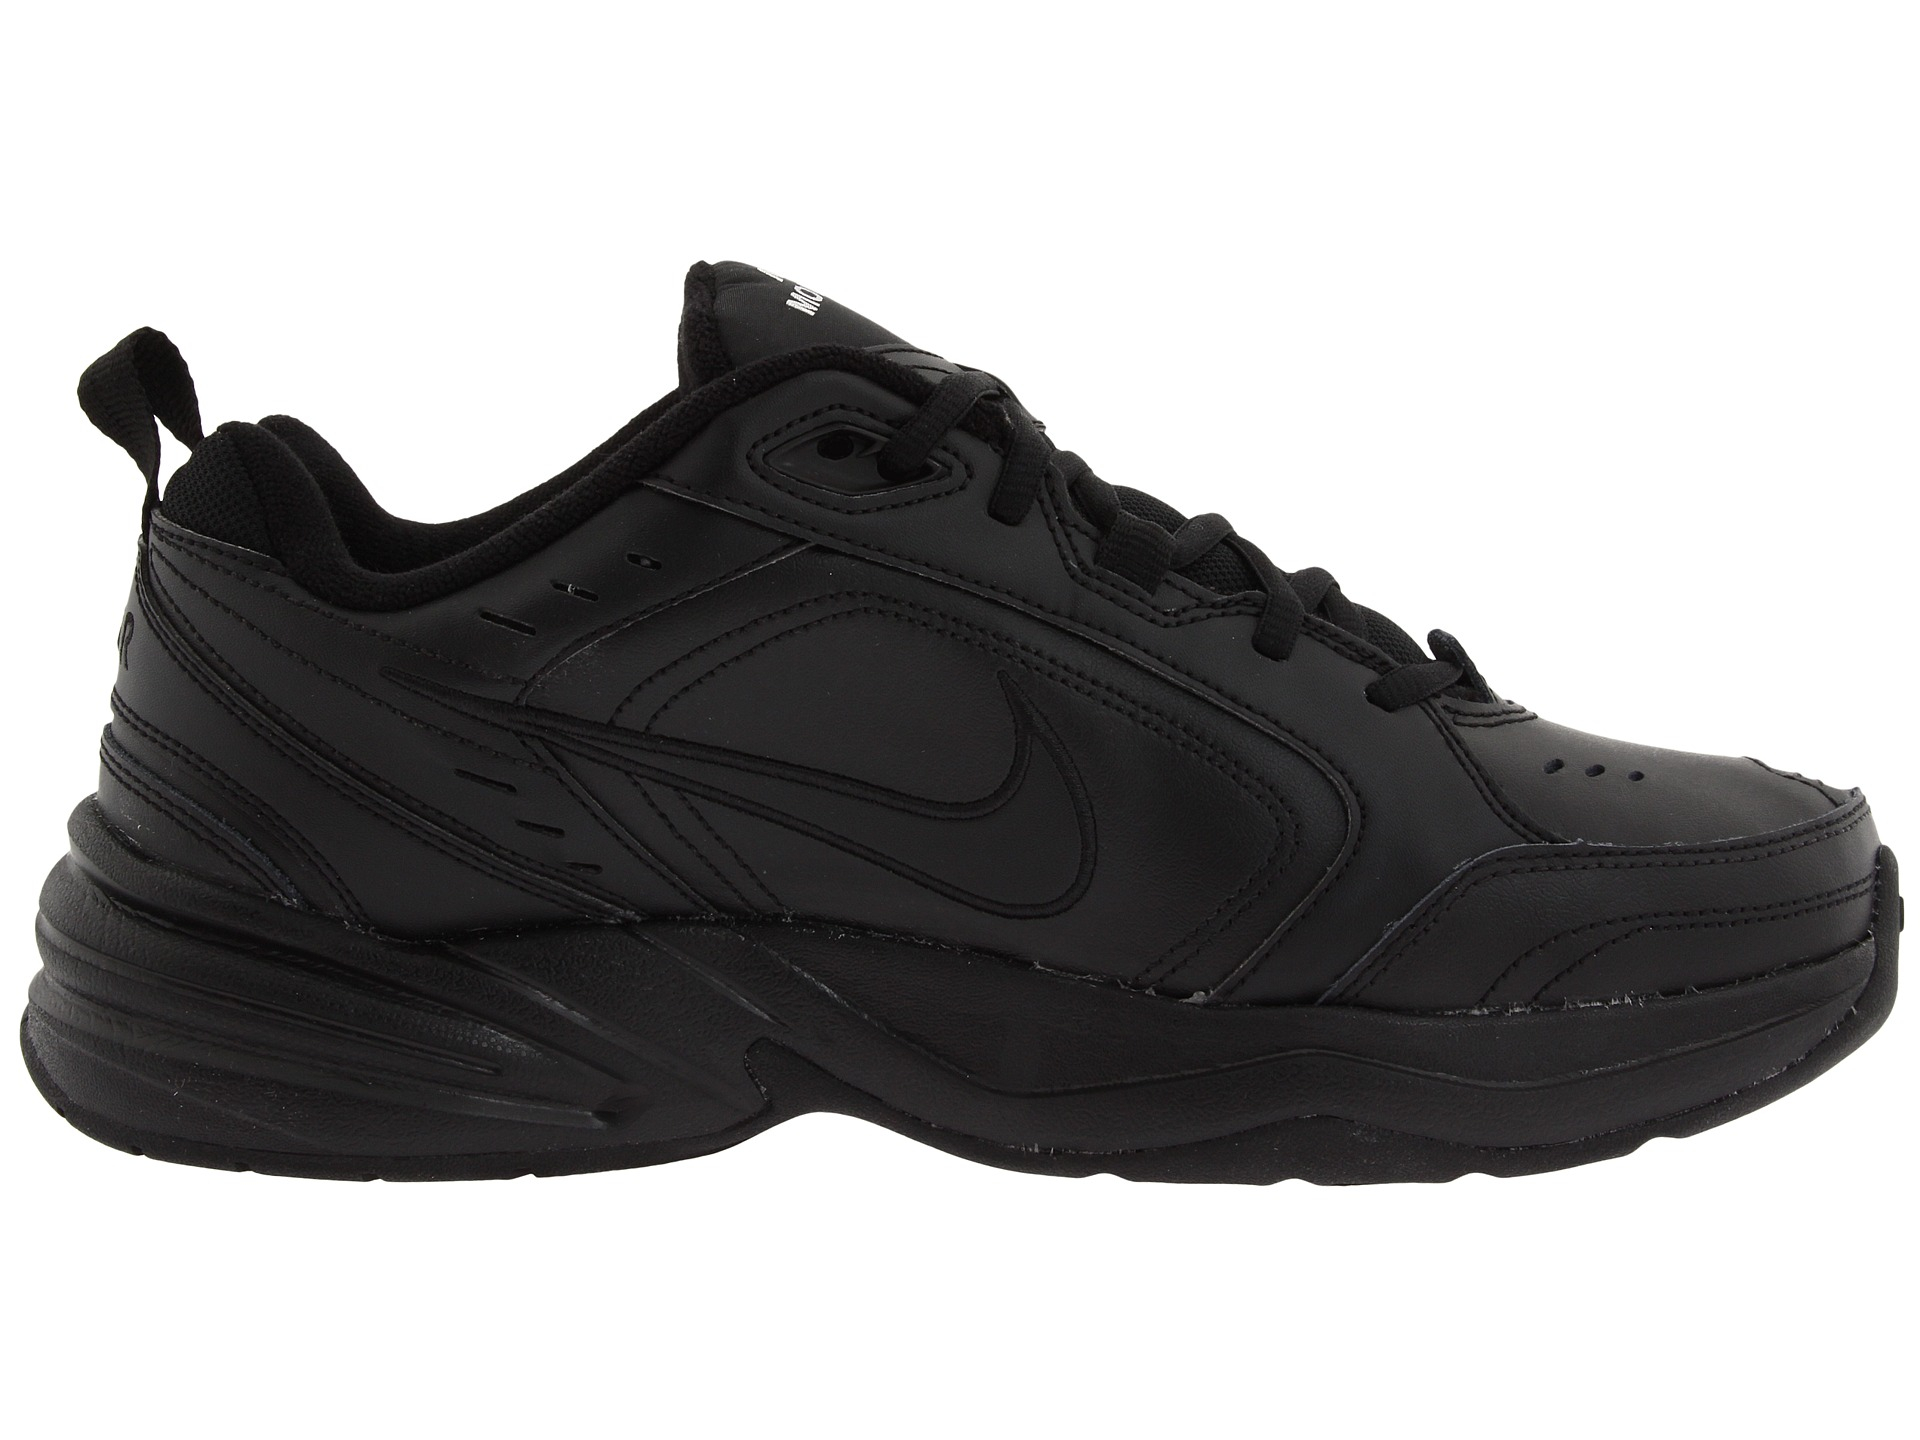 Nike Air Monarch Iv In Black For Men Lyst